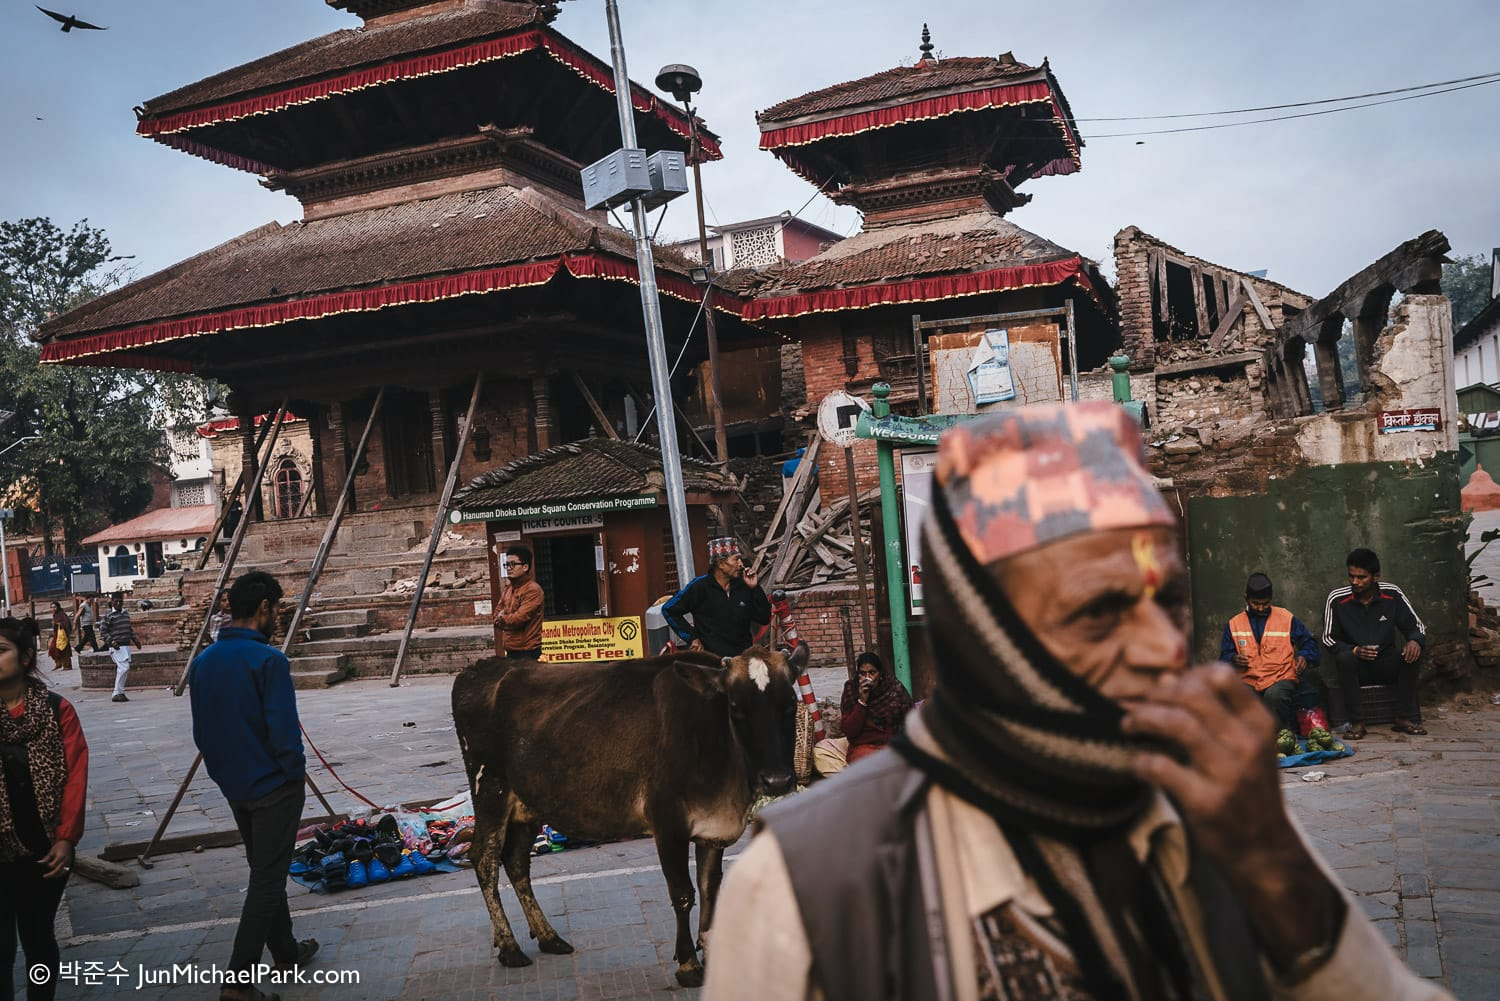 A UNESCO World Heritage site, Kathmandu Durbar Square is still in ruins 6 months after the earthquake. Life and commerce have resumed, but only precariously. 02.11.15